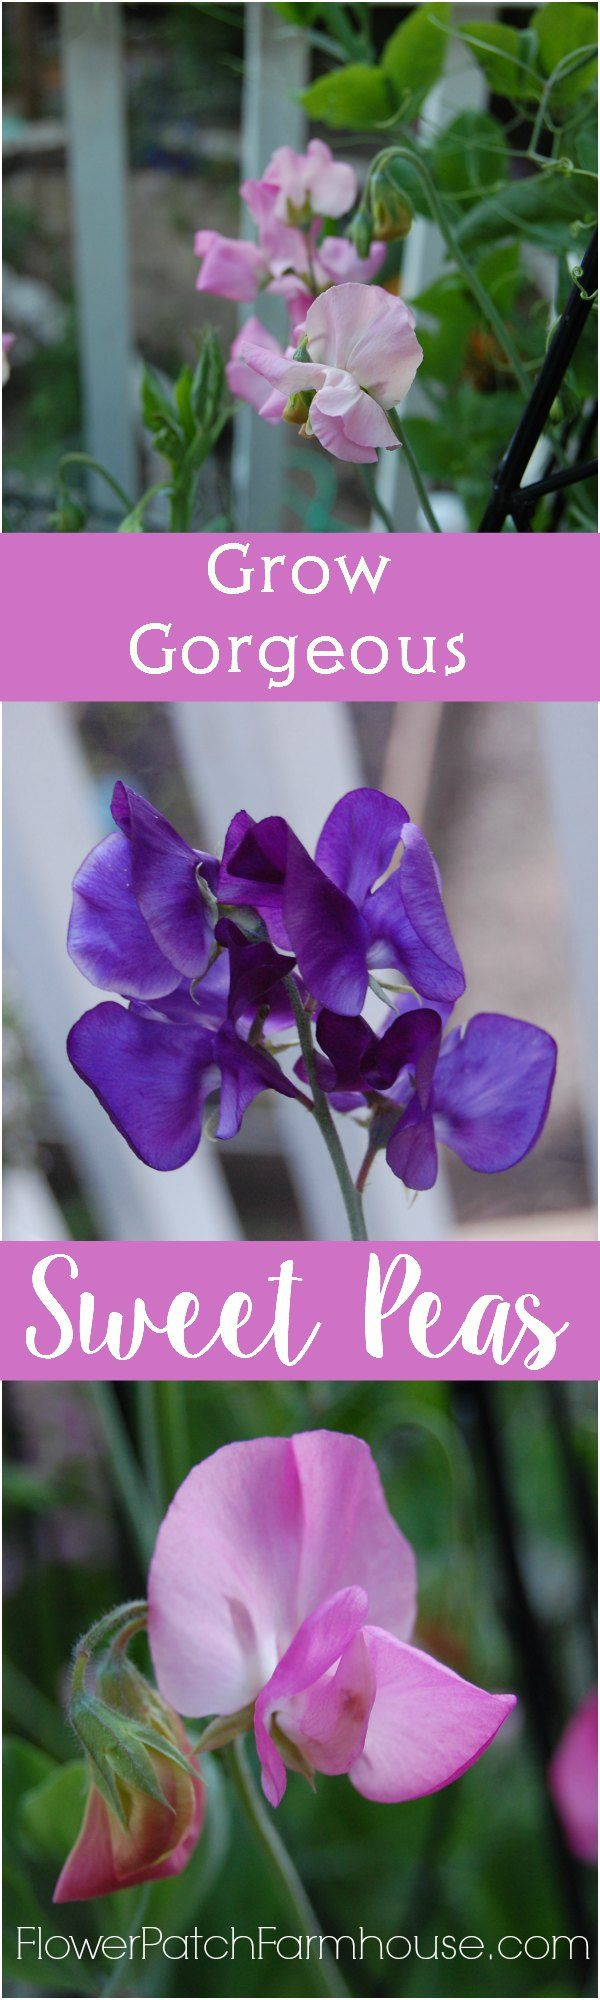 How to Grow Gorgeous Sweet Peas,....♥♥... it is so easy and the payoff is oh so sweet! FlowerPatchFarmhouse.com